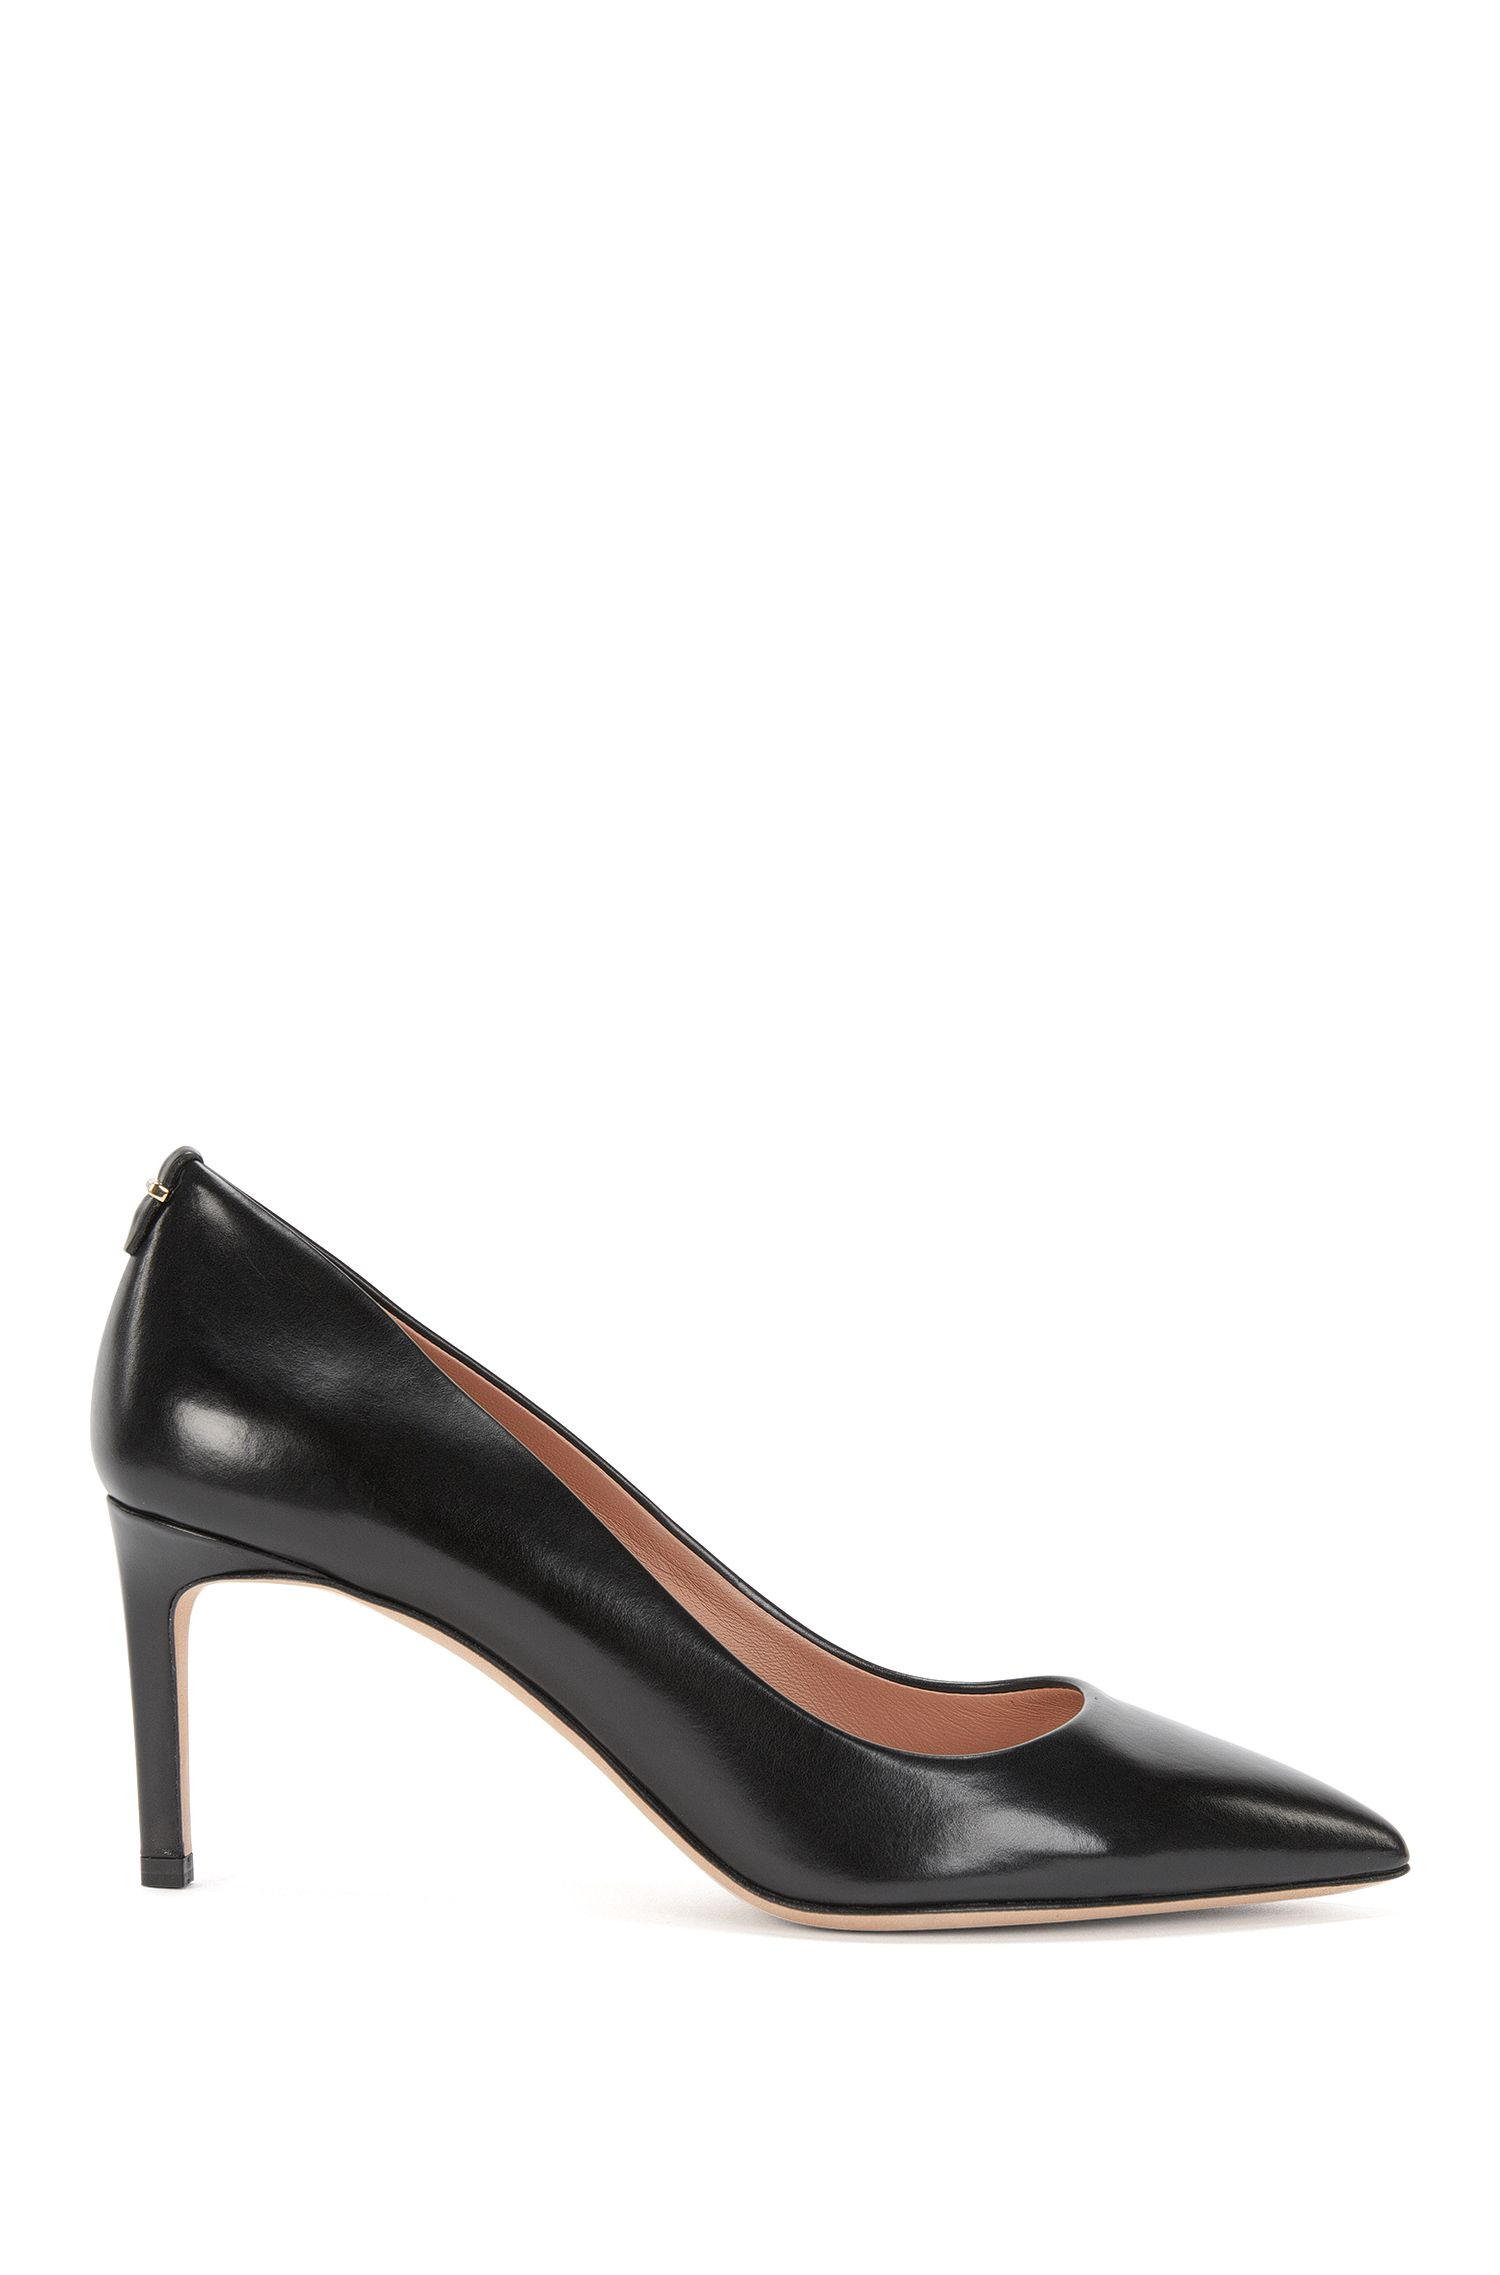 Pumps van luxueus, Italiaans leer uit de Luxury Staple-collectie